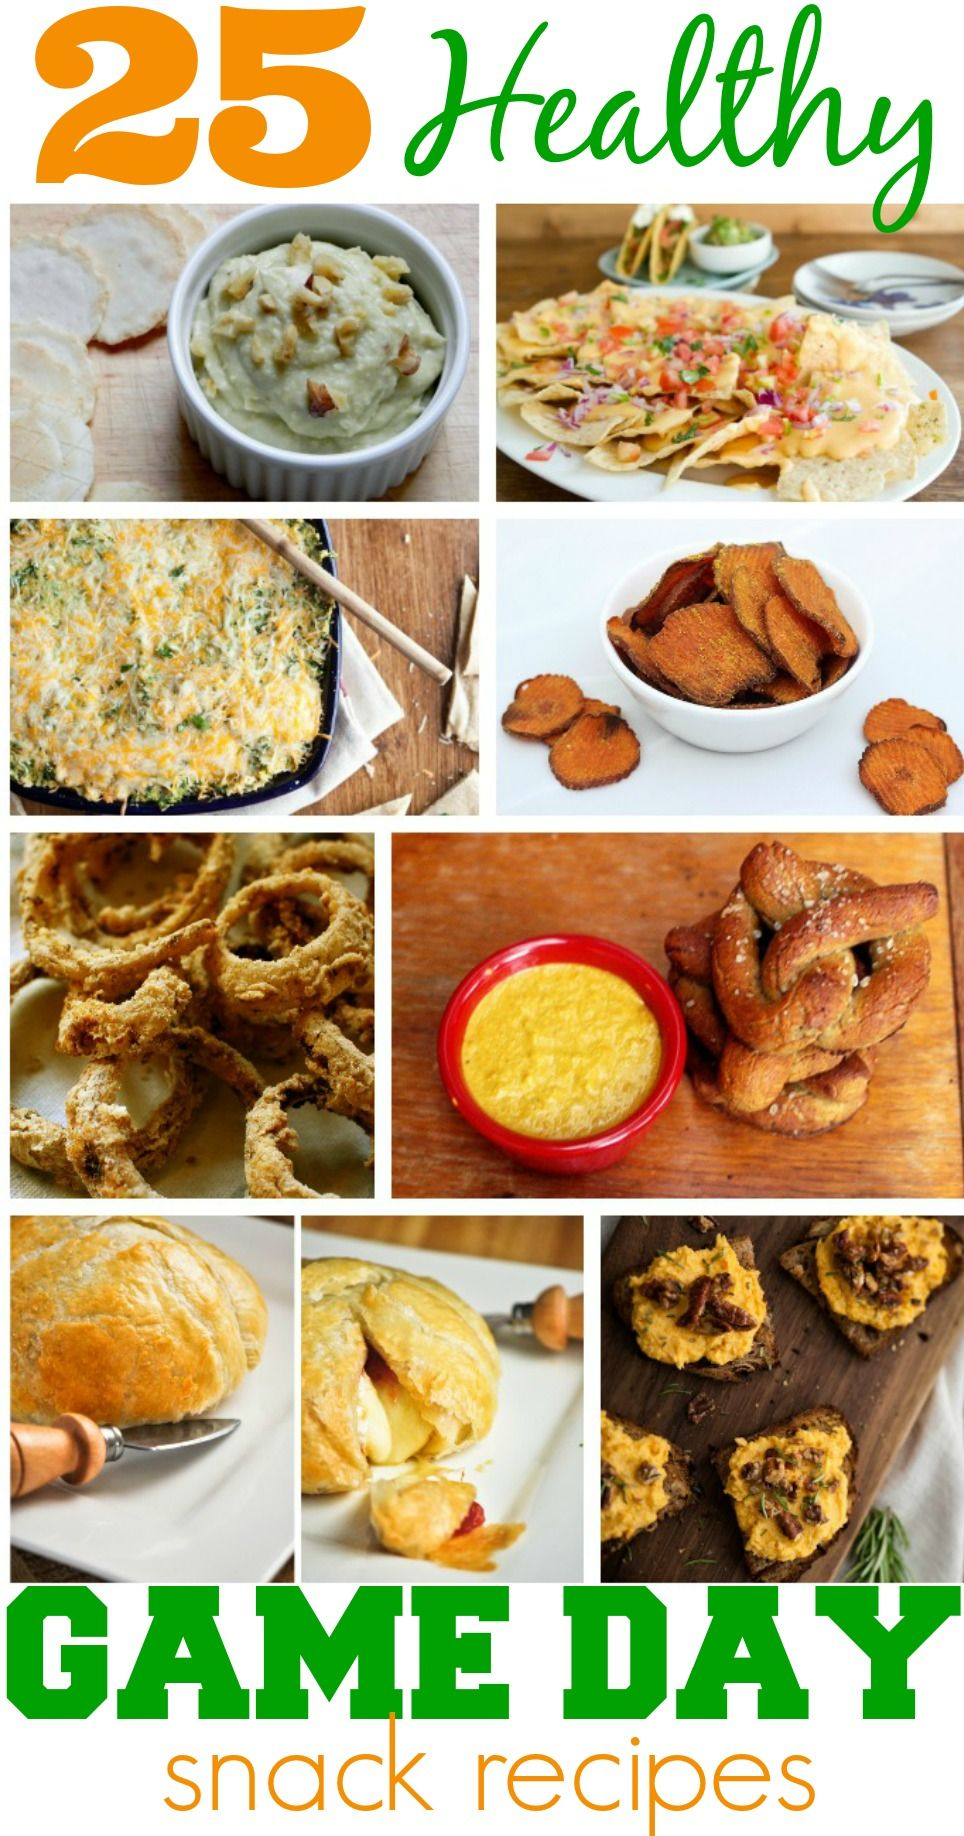 25 Healthy Game Day Snack Recipes - The Coupon Project